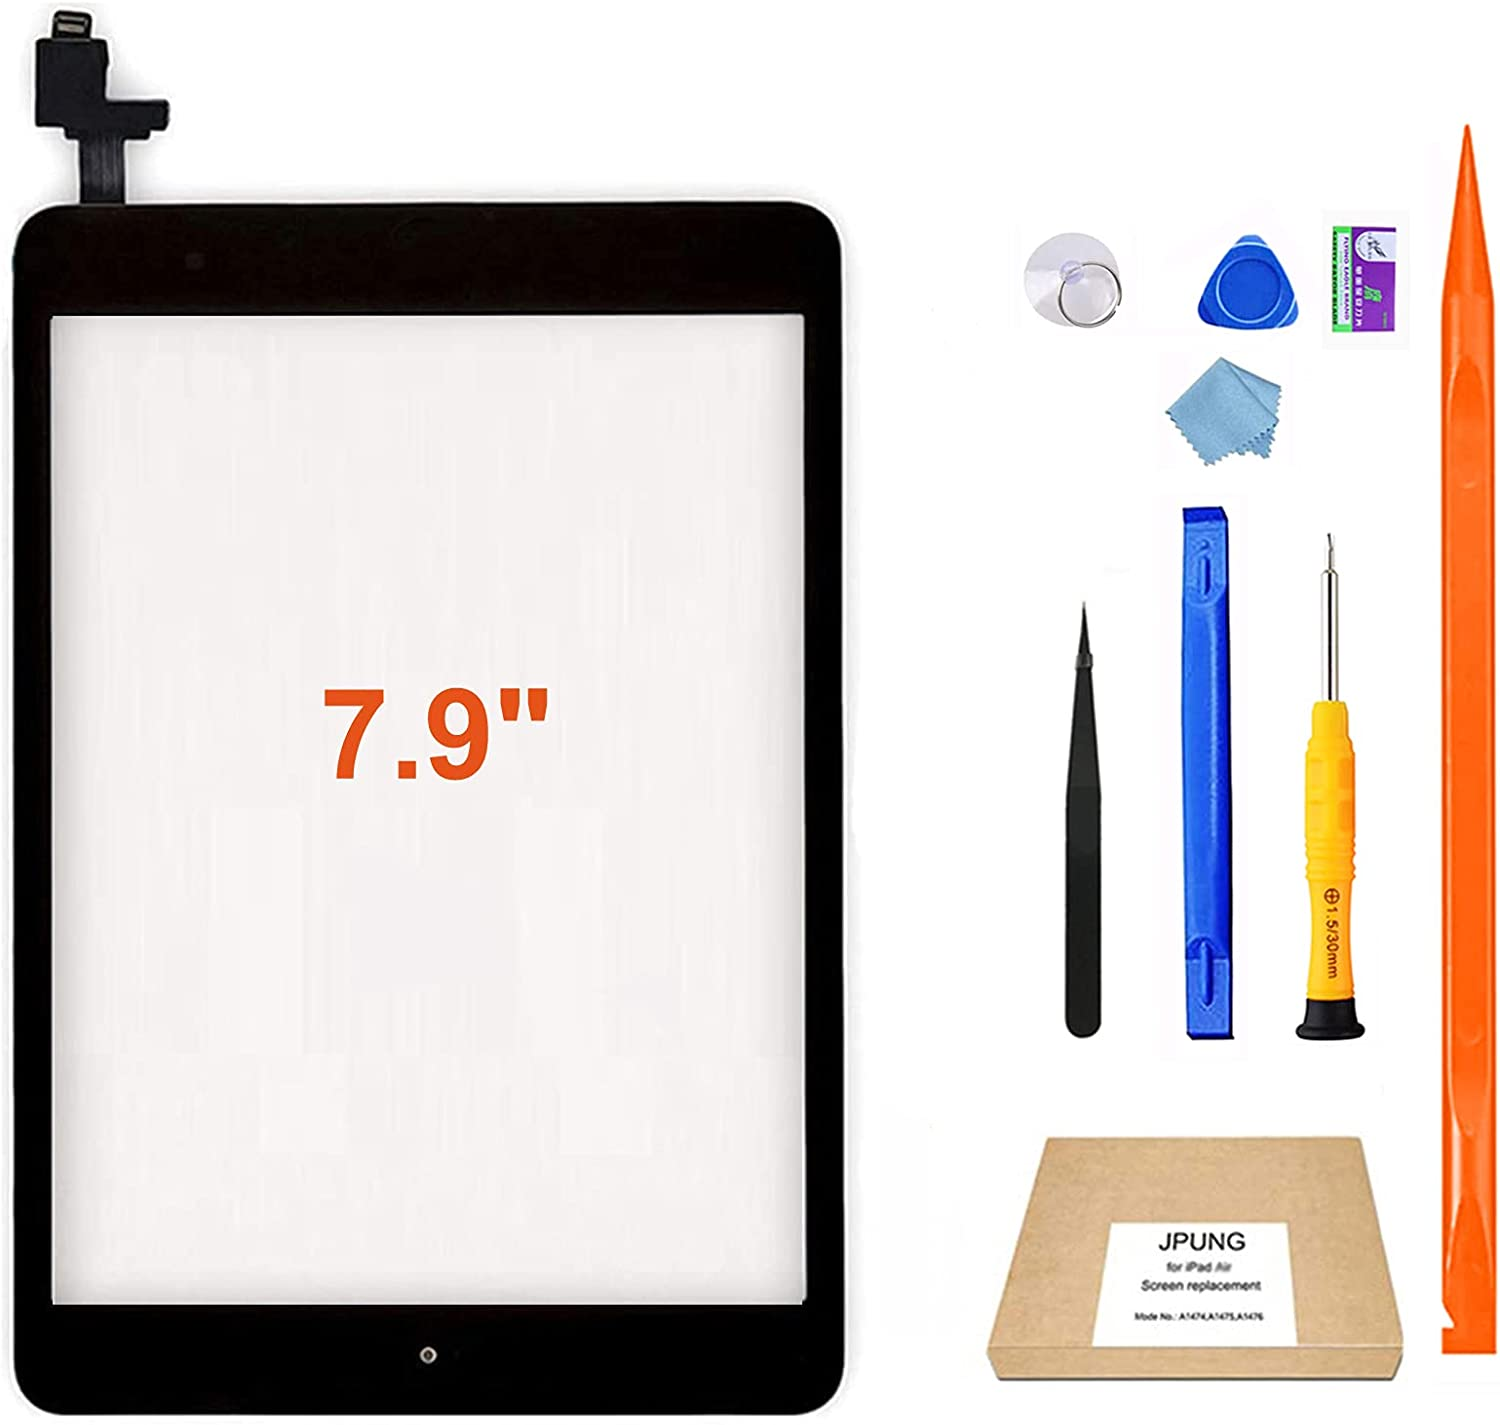 JPUNG Super sale for iPad Mini 1 A1432 Replacement A1454 Long Beach Mall Screen 2